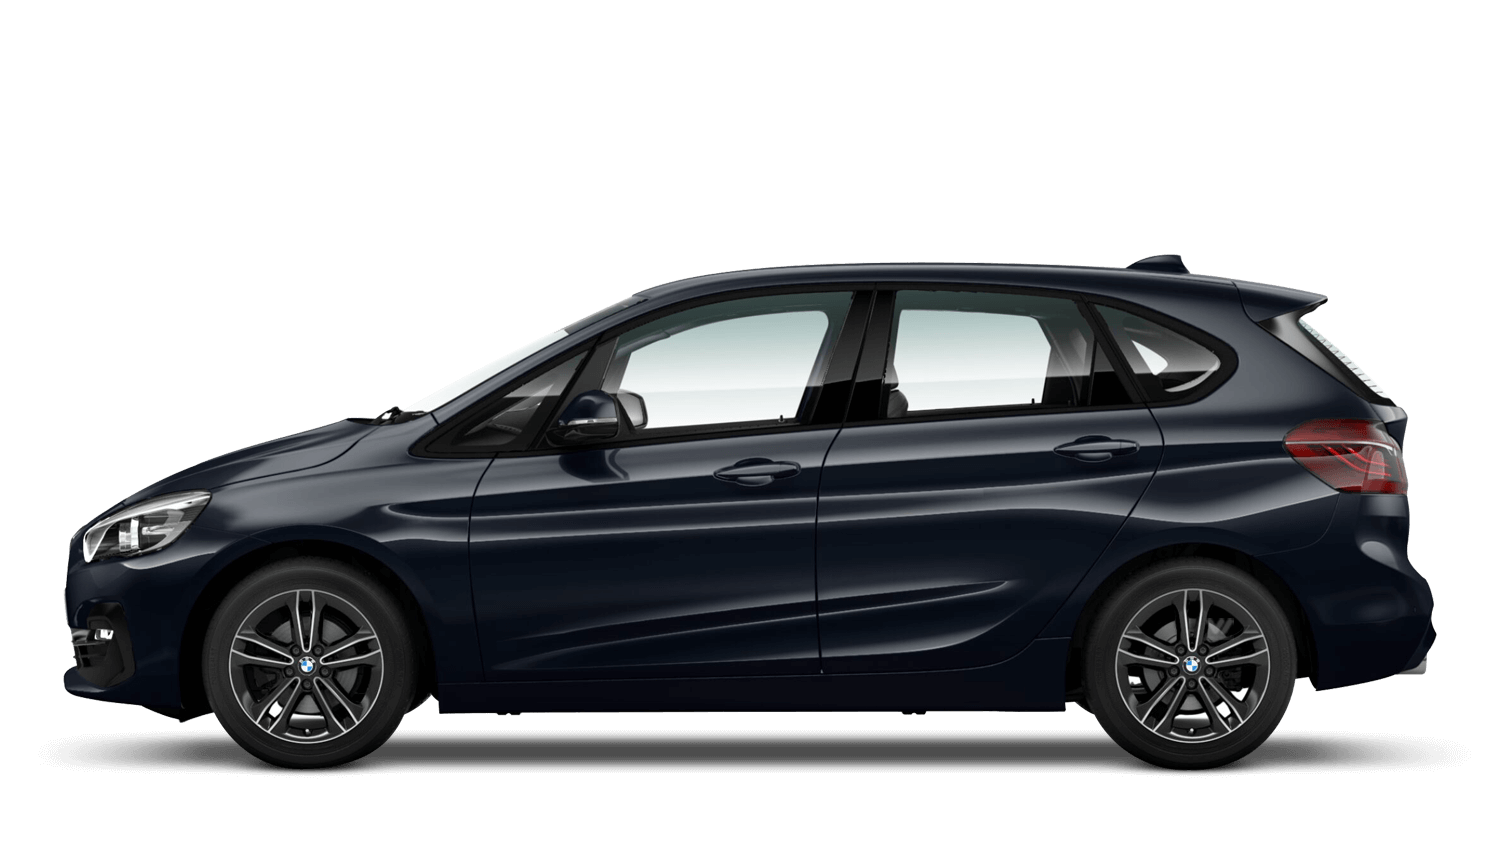 Imperial Blue (Xirallic) BMW 2 Series Active Tourer